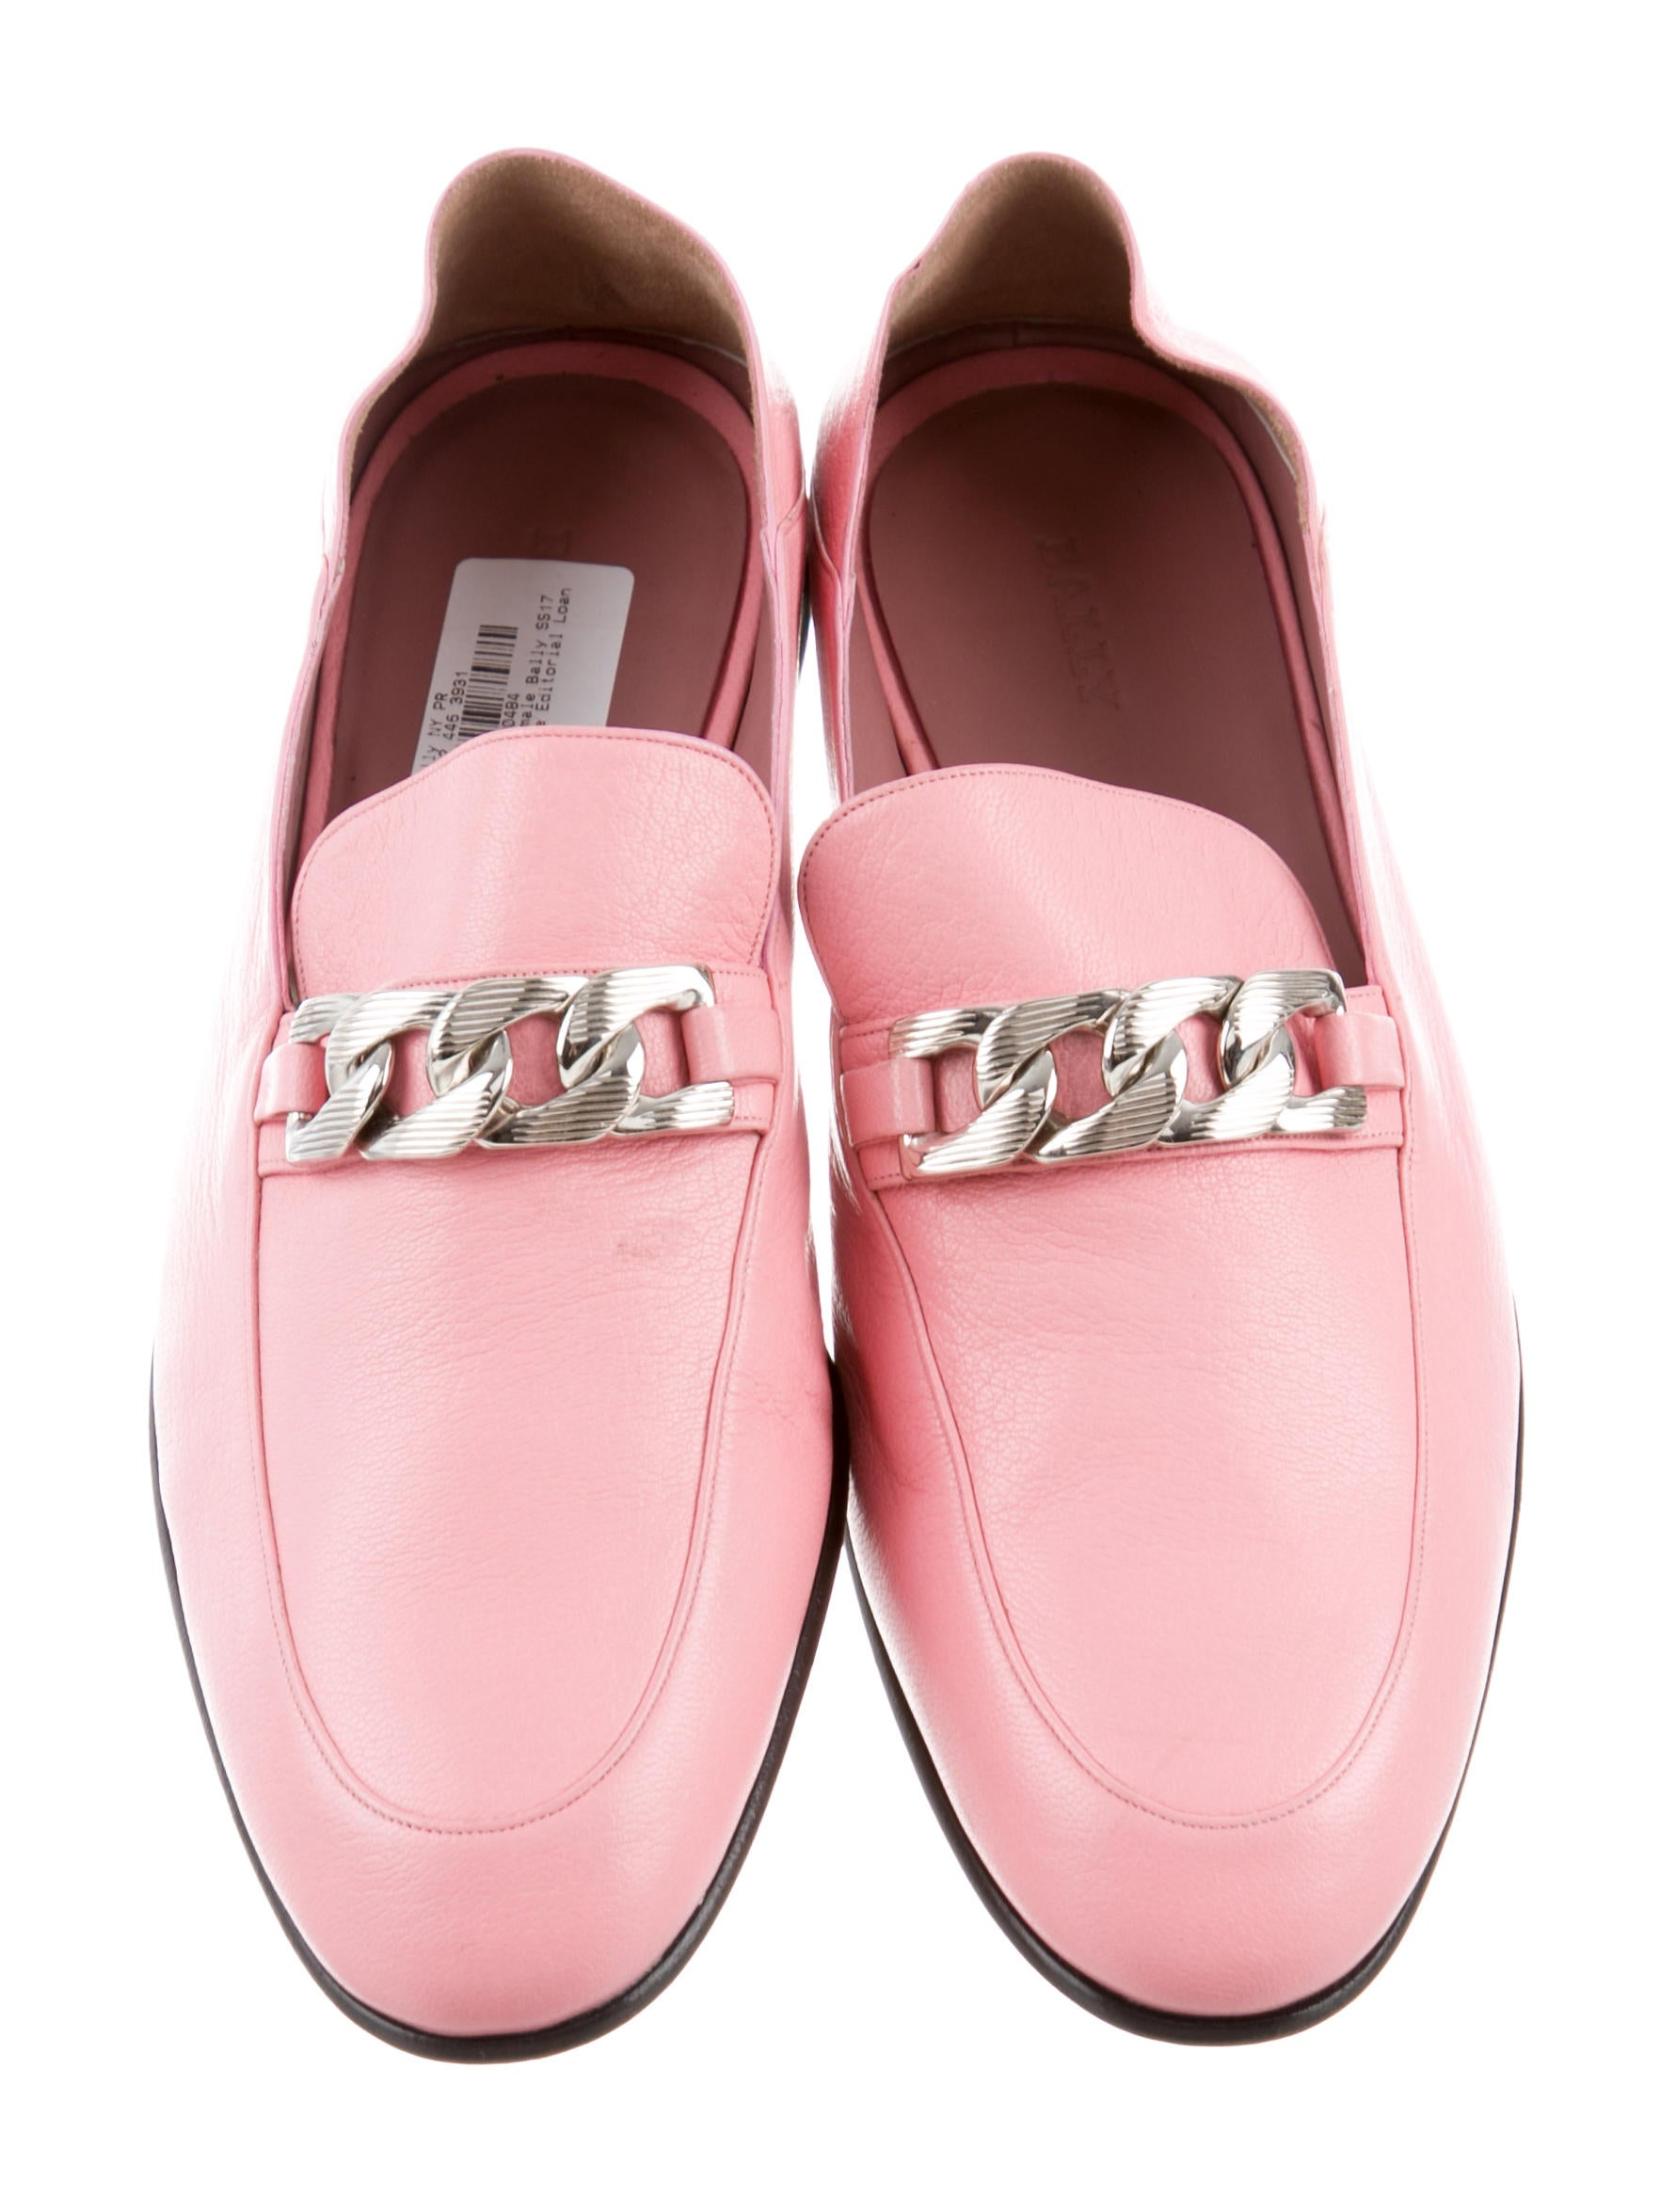 Bally 2017 Daire Loafers clearance cheap online get authentic sale with mastercard comfortable online 8AcNXnG